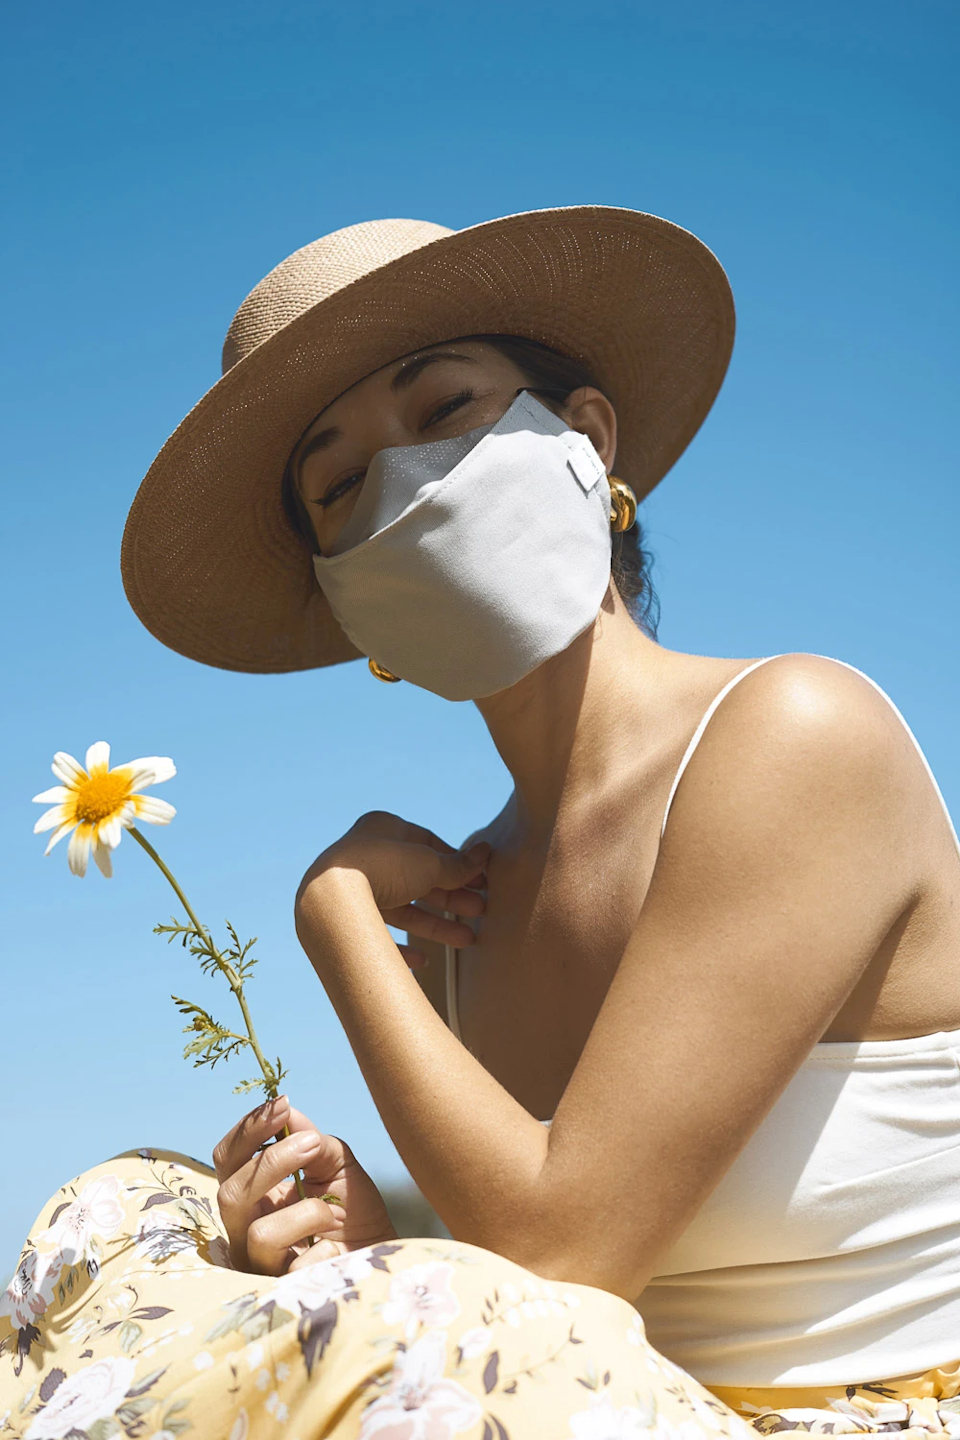 "<h3><a href=""https://fave.co/2W4Tzjb"" rel=""nofollow noopener"" target=""_blank"" data-ylk=""slk:Graf Lantz Anshin Organic Cotton Face Mask"" class=""link rapid-noclick-resp"">Graf Lantz Anshin Organic Cotton Face Mask</a></h3> <br>All Graf Lantz masks have been handmade in Los Angeles from premium-quality, 100% organic cotton twill. The fabric is eco-friendly and sustainably processed throughout dyeing and finishing. <br><br><strong>Graf Lantz</strong> Anshin Organic Cotton Face Mask - Ear Band, $, available at <a href=""https://go.skimresources.com/?id=30283X879131&url=https%3A%2F%2Fgraf-lantz.com%2Fproducts%2Fanshin-organic-cotton-face-mask-ear-band-1"" rel=""nofollow noopener"" target=""_blank"" data-ylk=""slk:Graf Lantz"" class=""link rapid-noclick-resp"">Graf Lantz</a><br>"